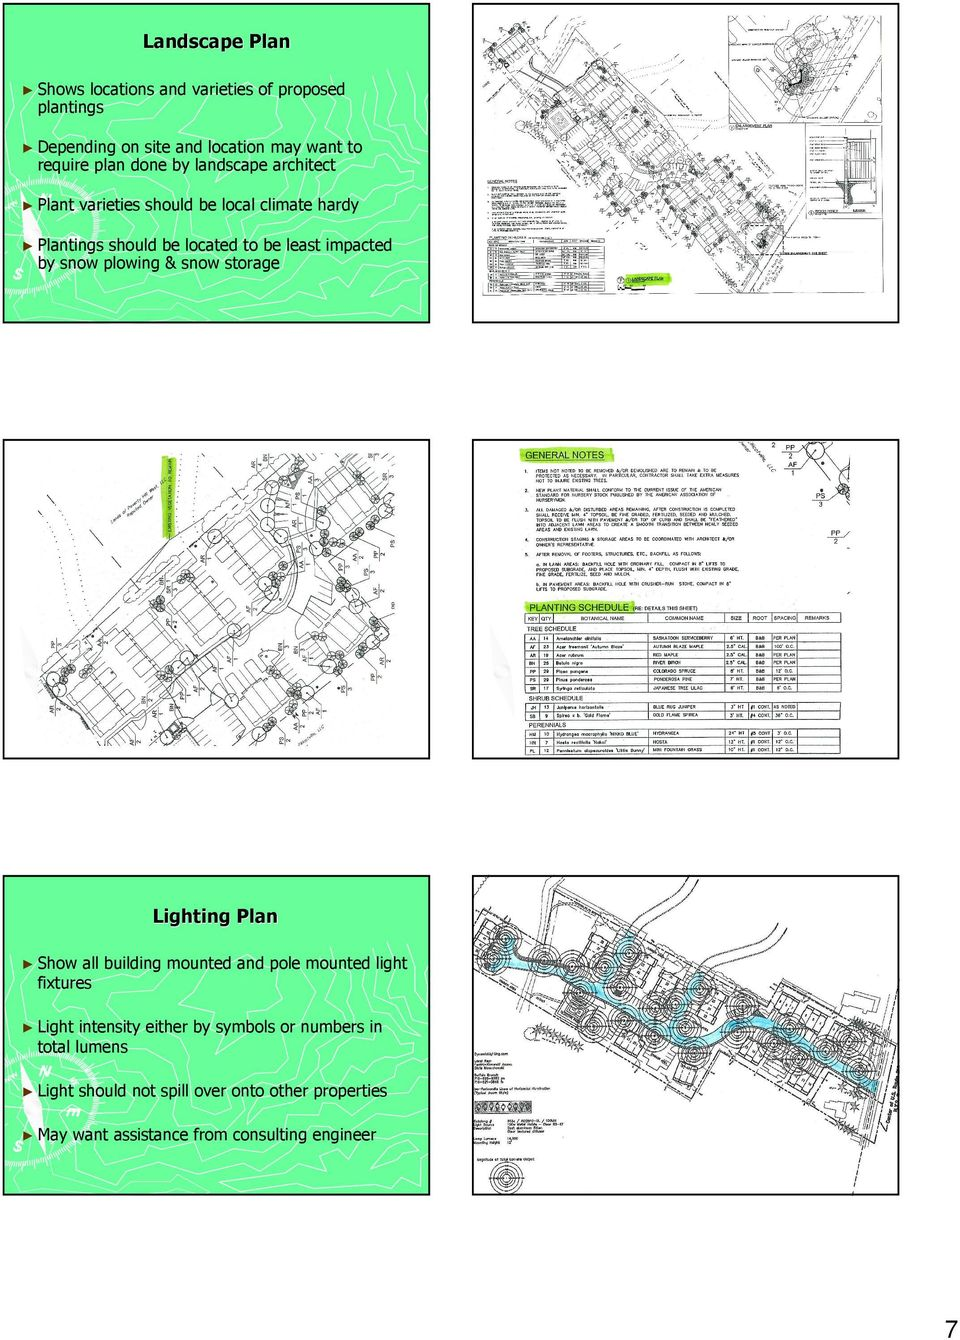 snow plowing & snow storage Lighting Plan Show all building mounted and pole mounted light fixtures Light intensity either by